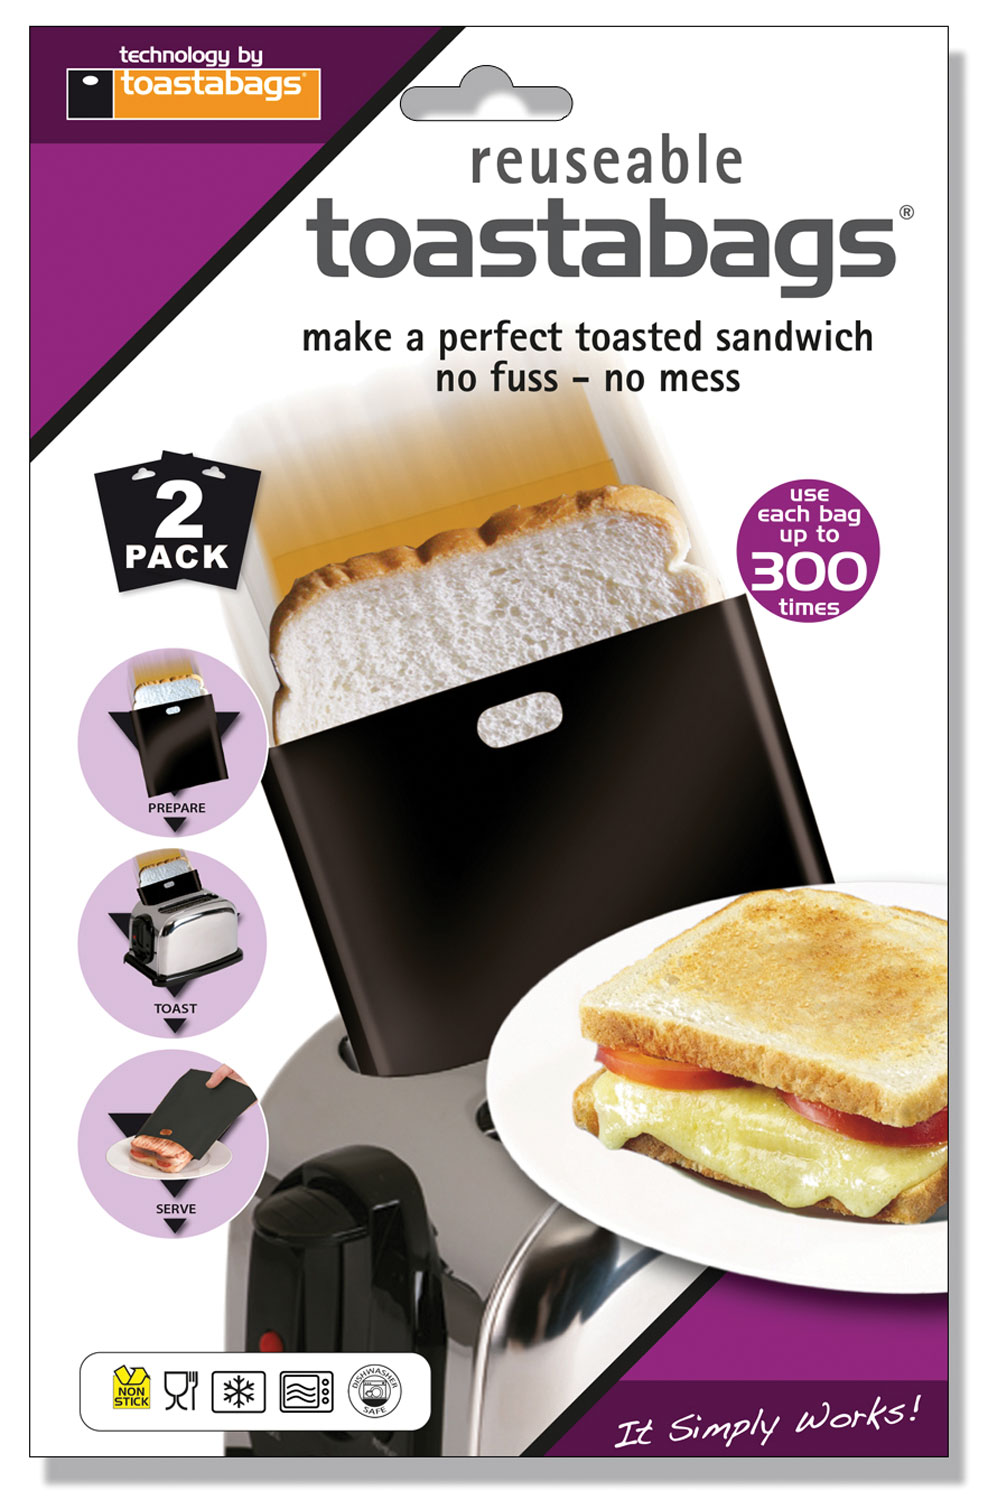 Toastabags 300 Use - 2 Pack